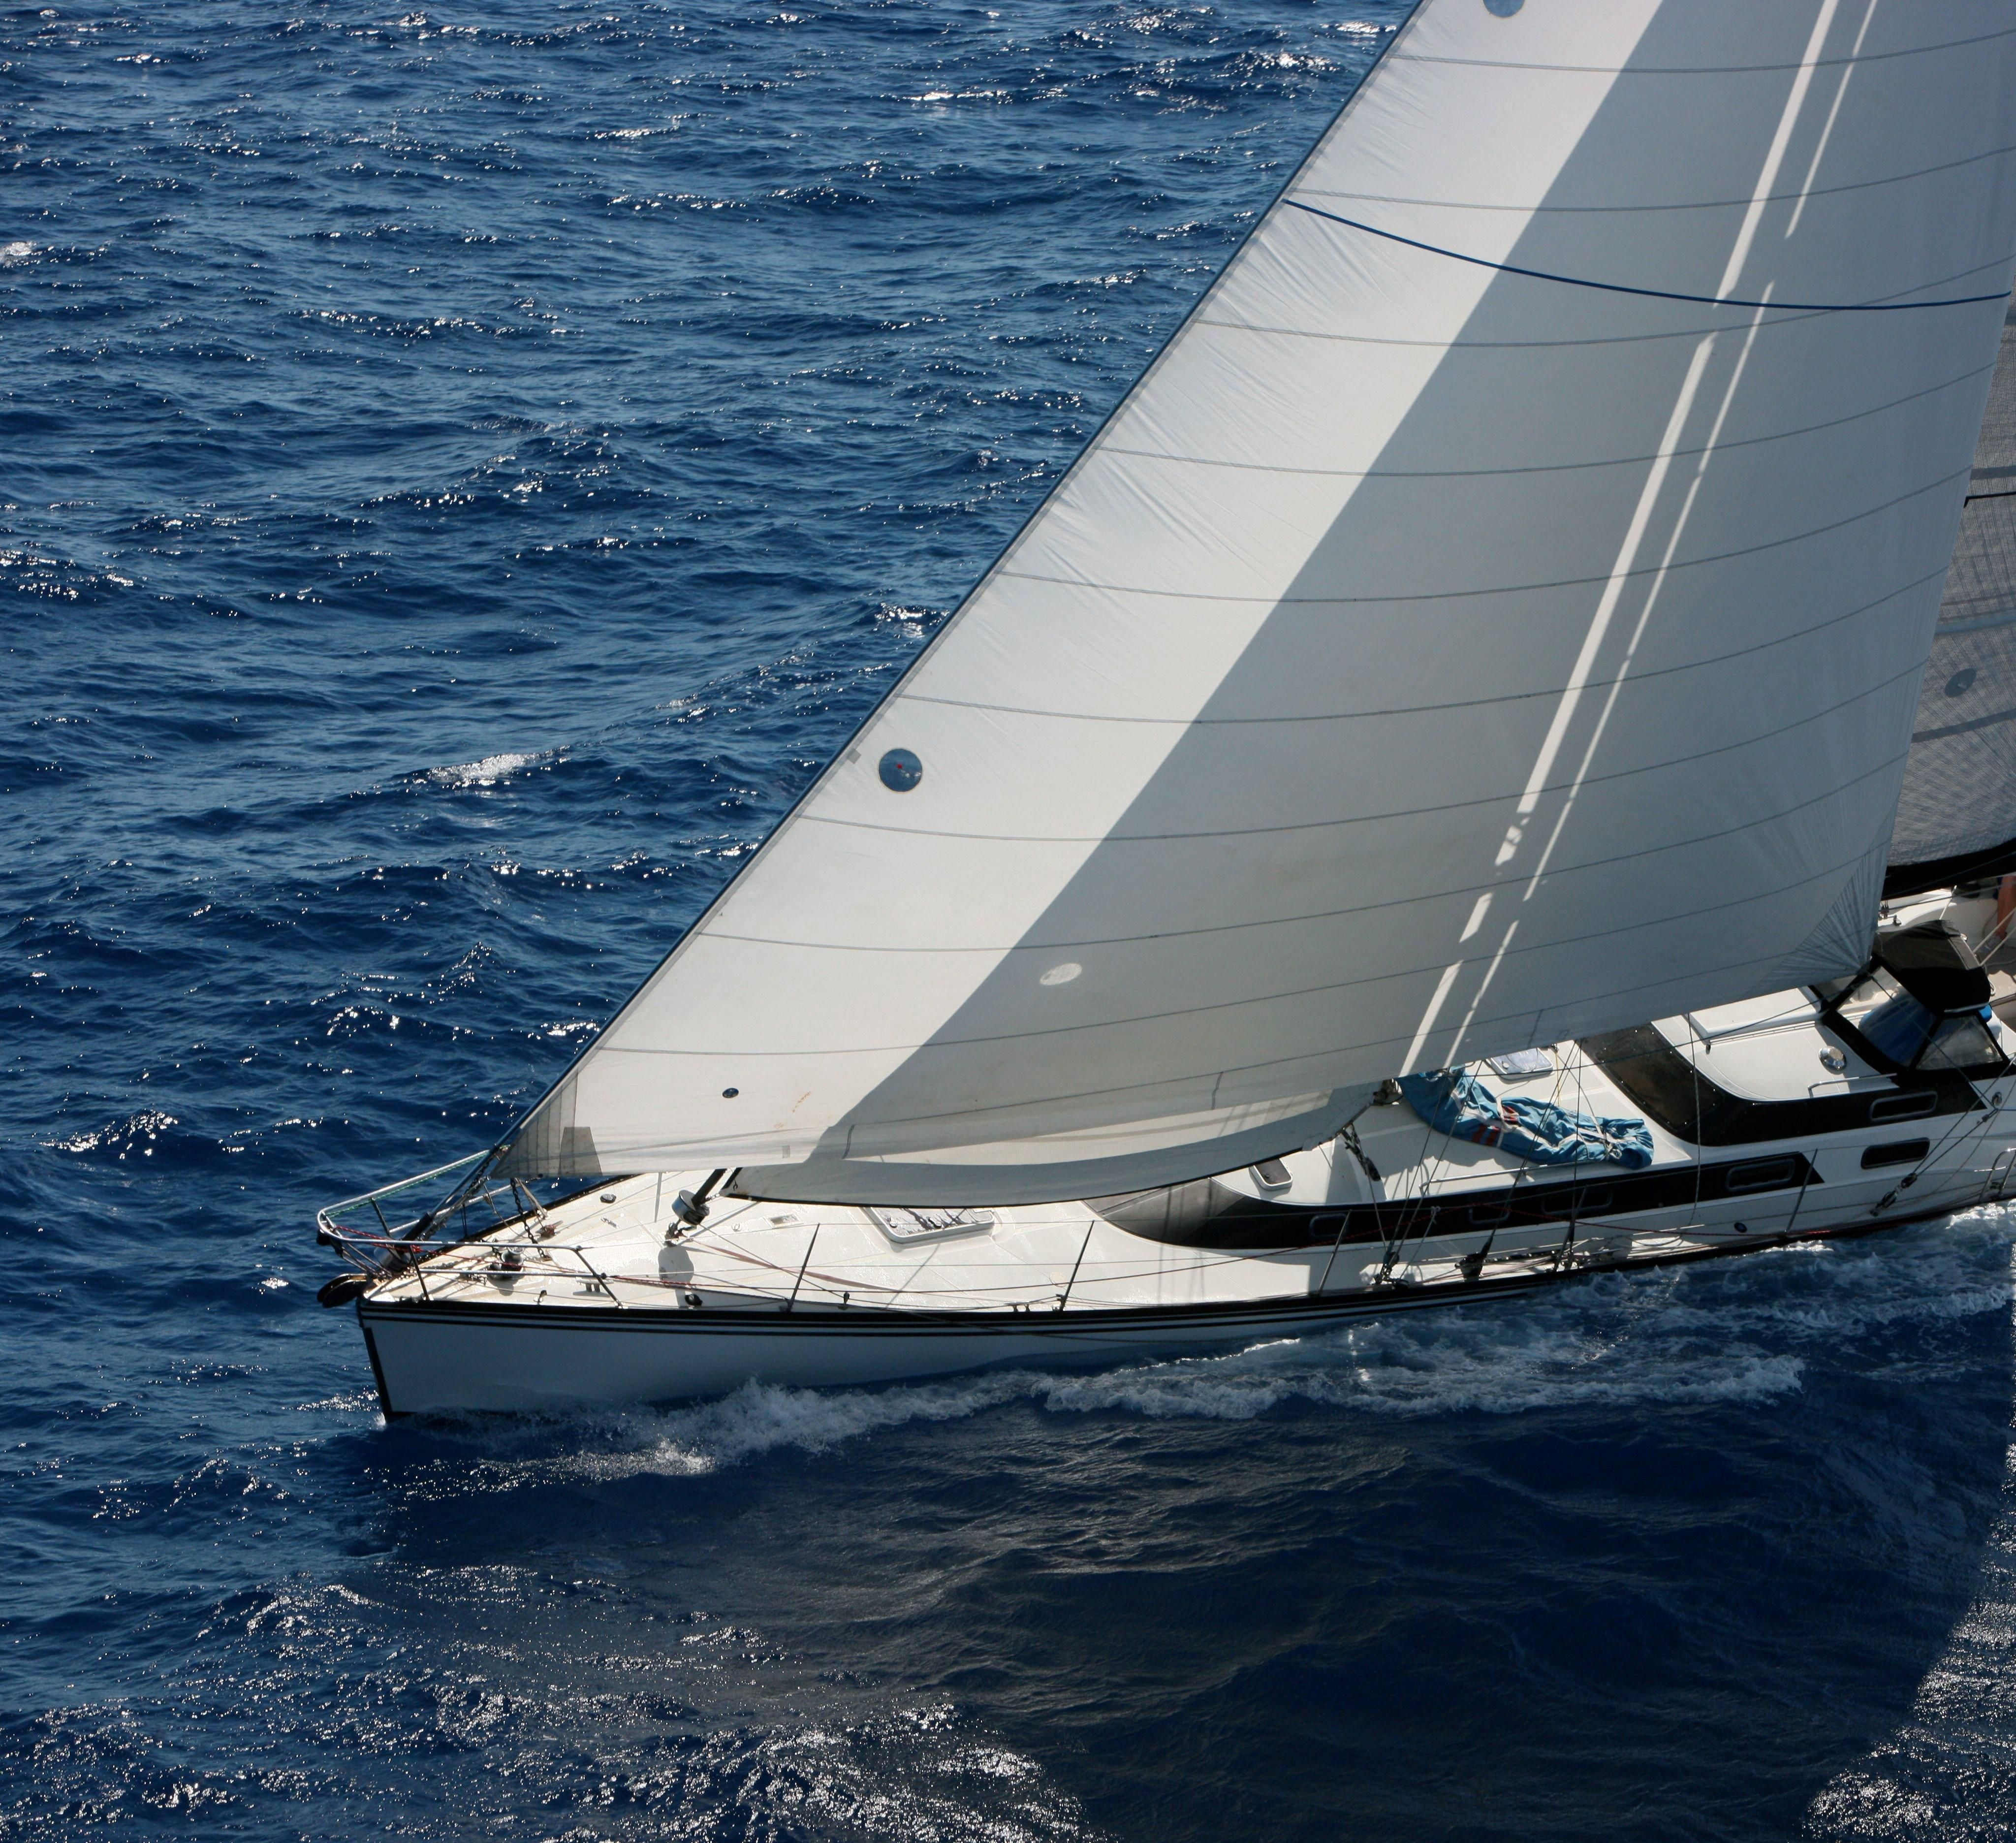 1989 MacGregor 65 Pilothouse Cutter Sail Boat For Sale ...